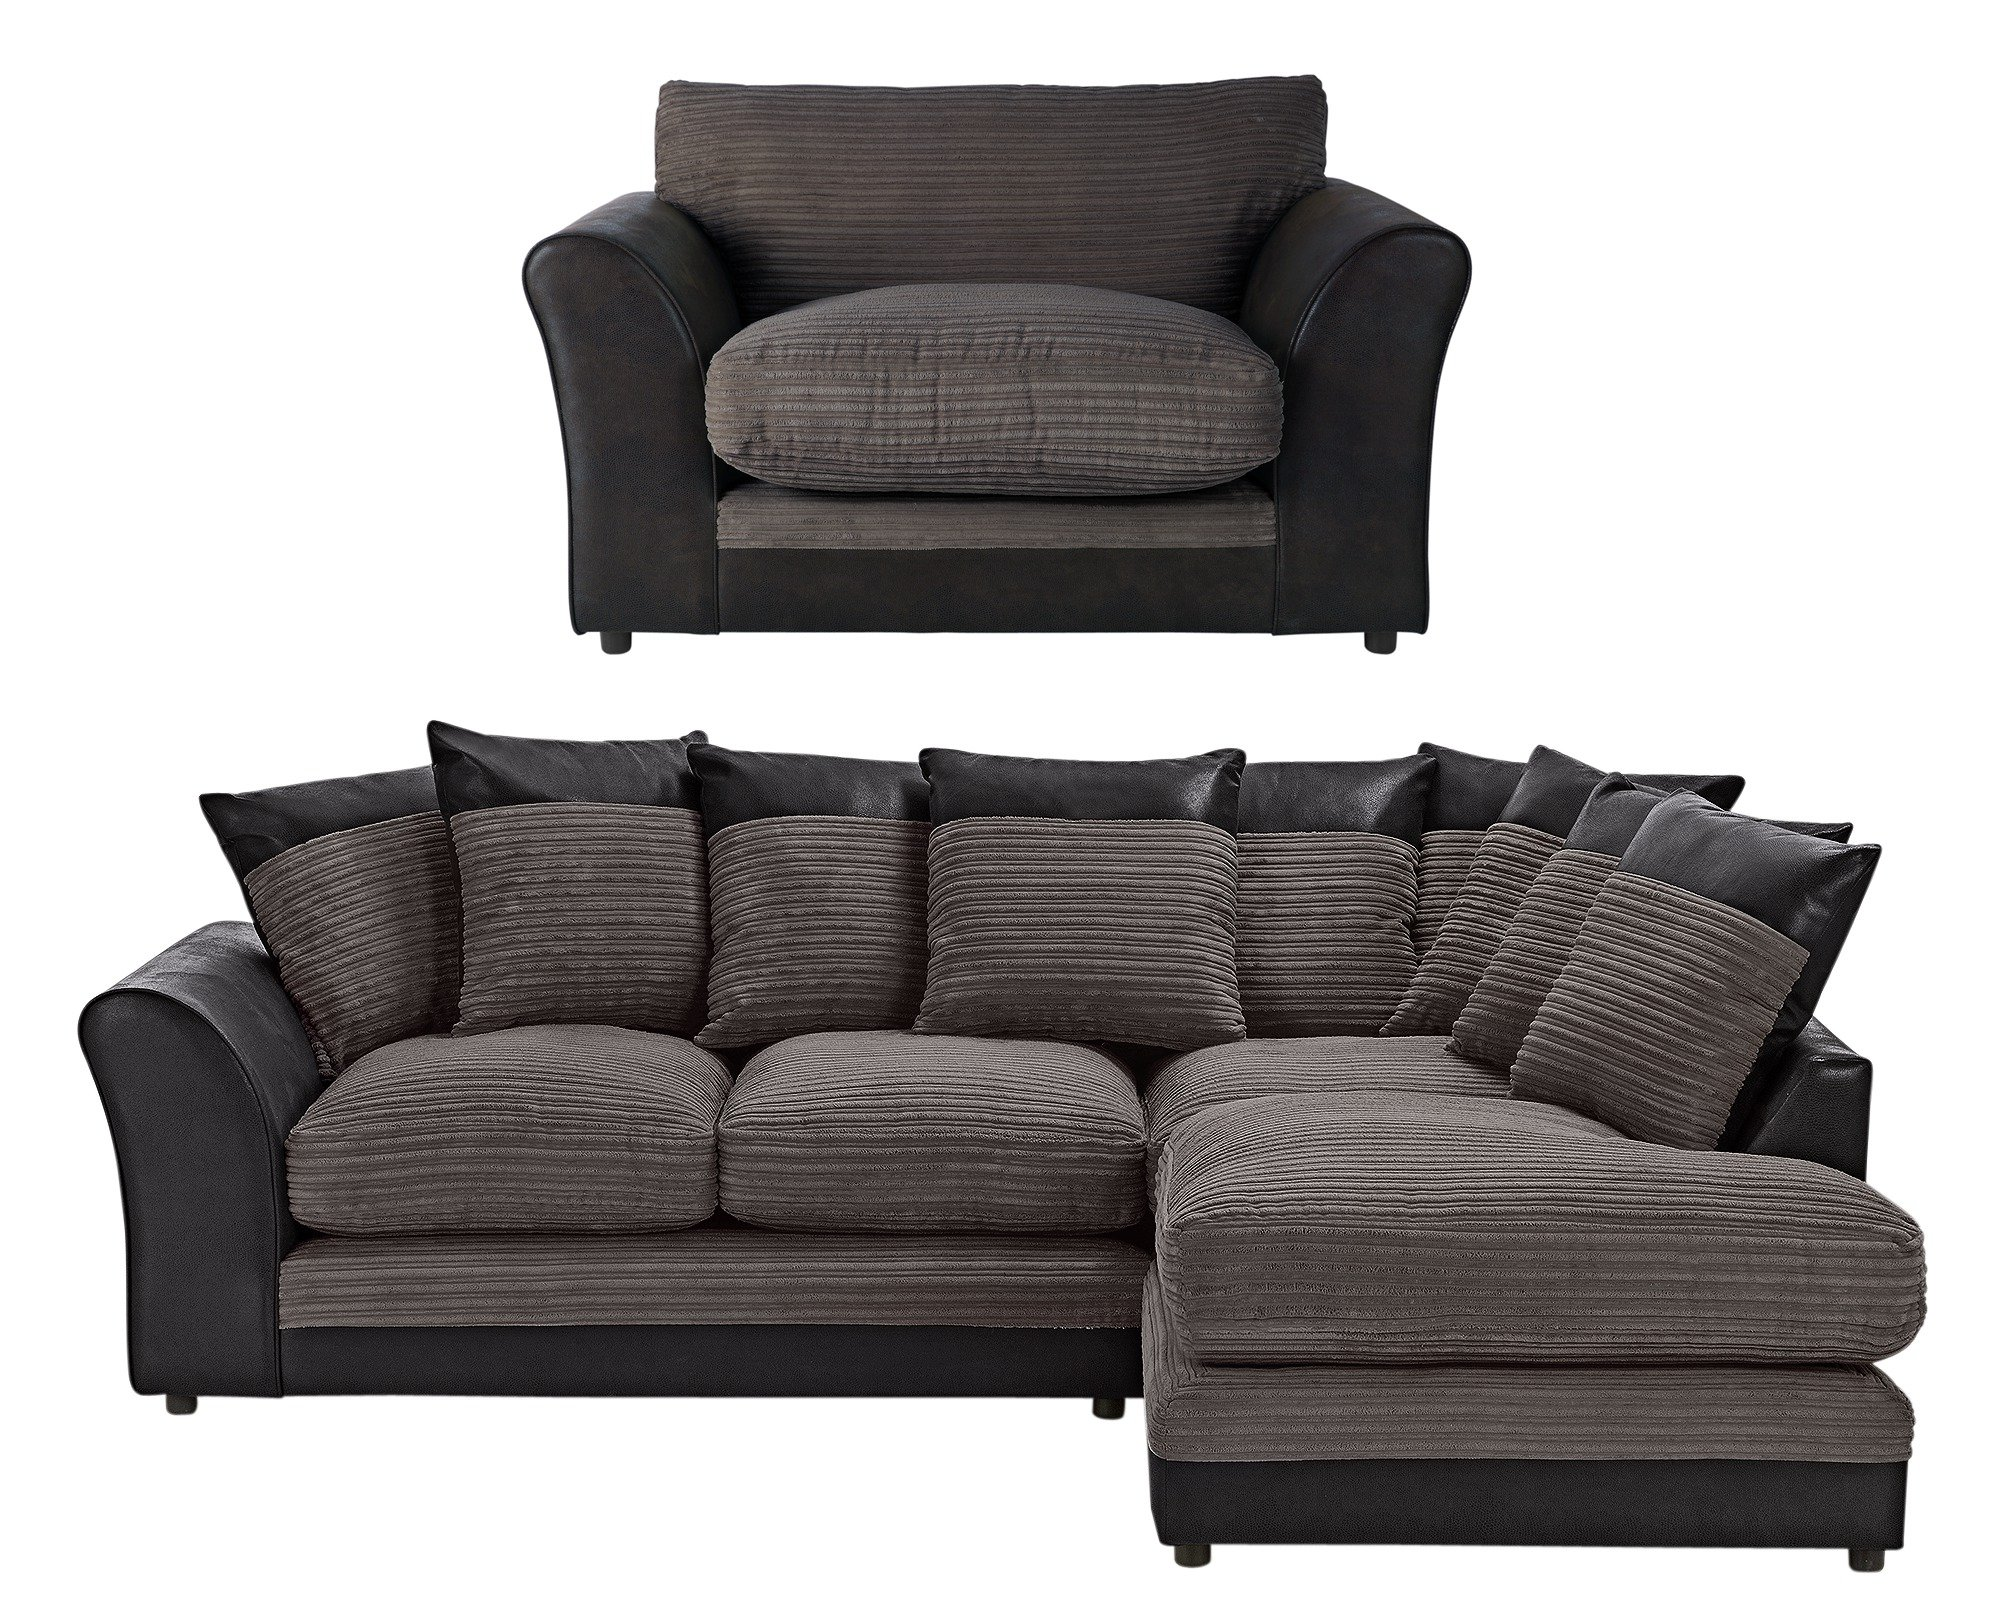 sofa package deals uk how do you take apart a bed packages page 1 argos price tracker